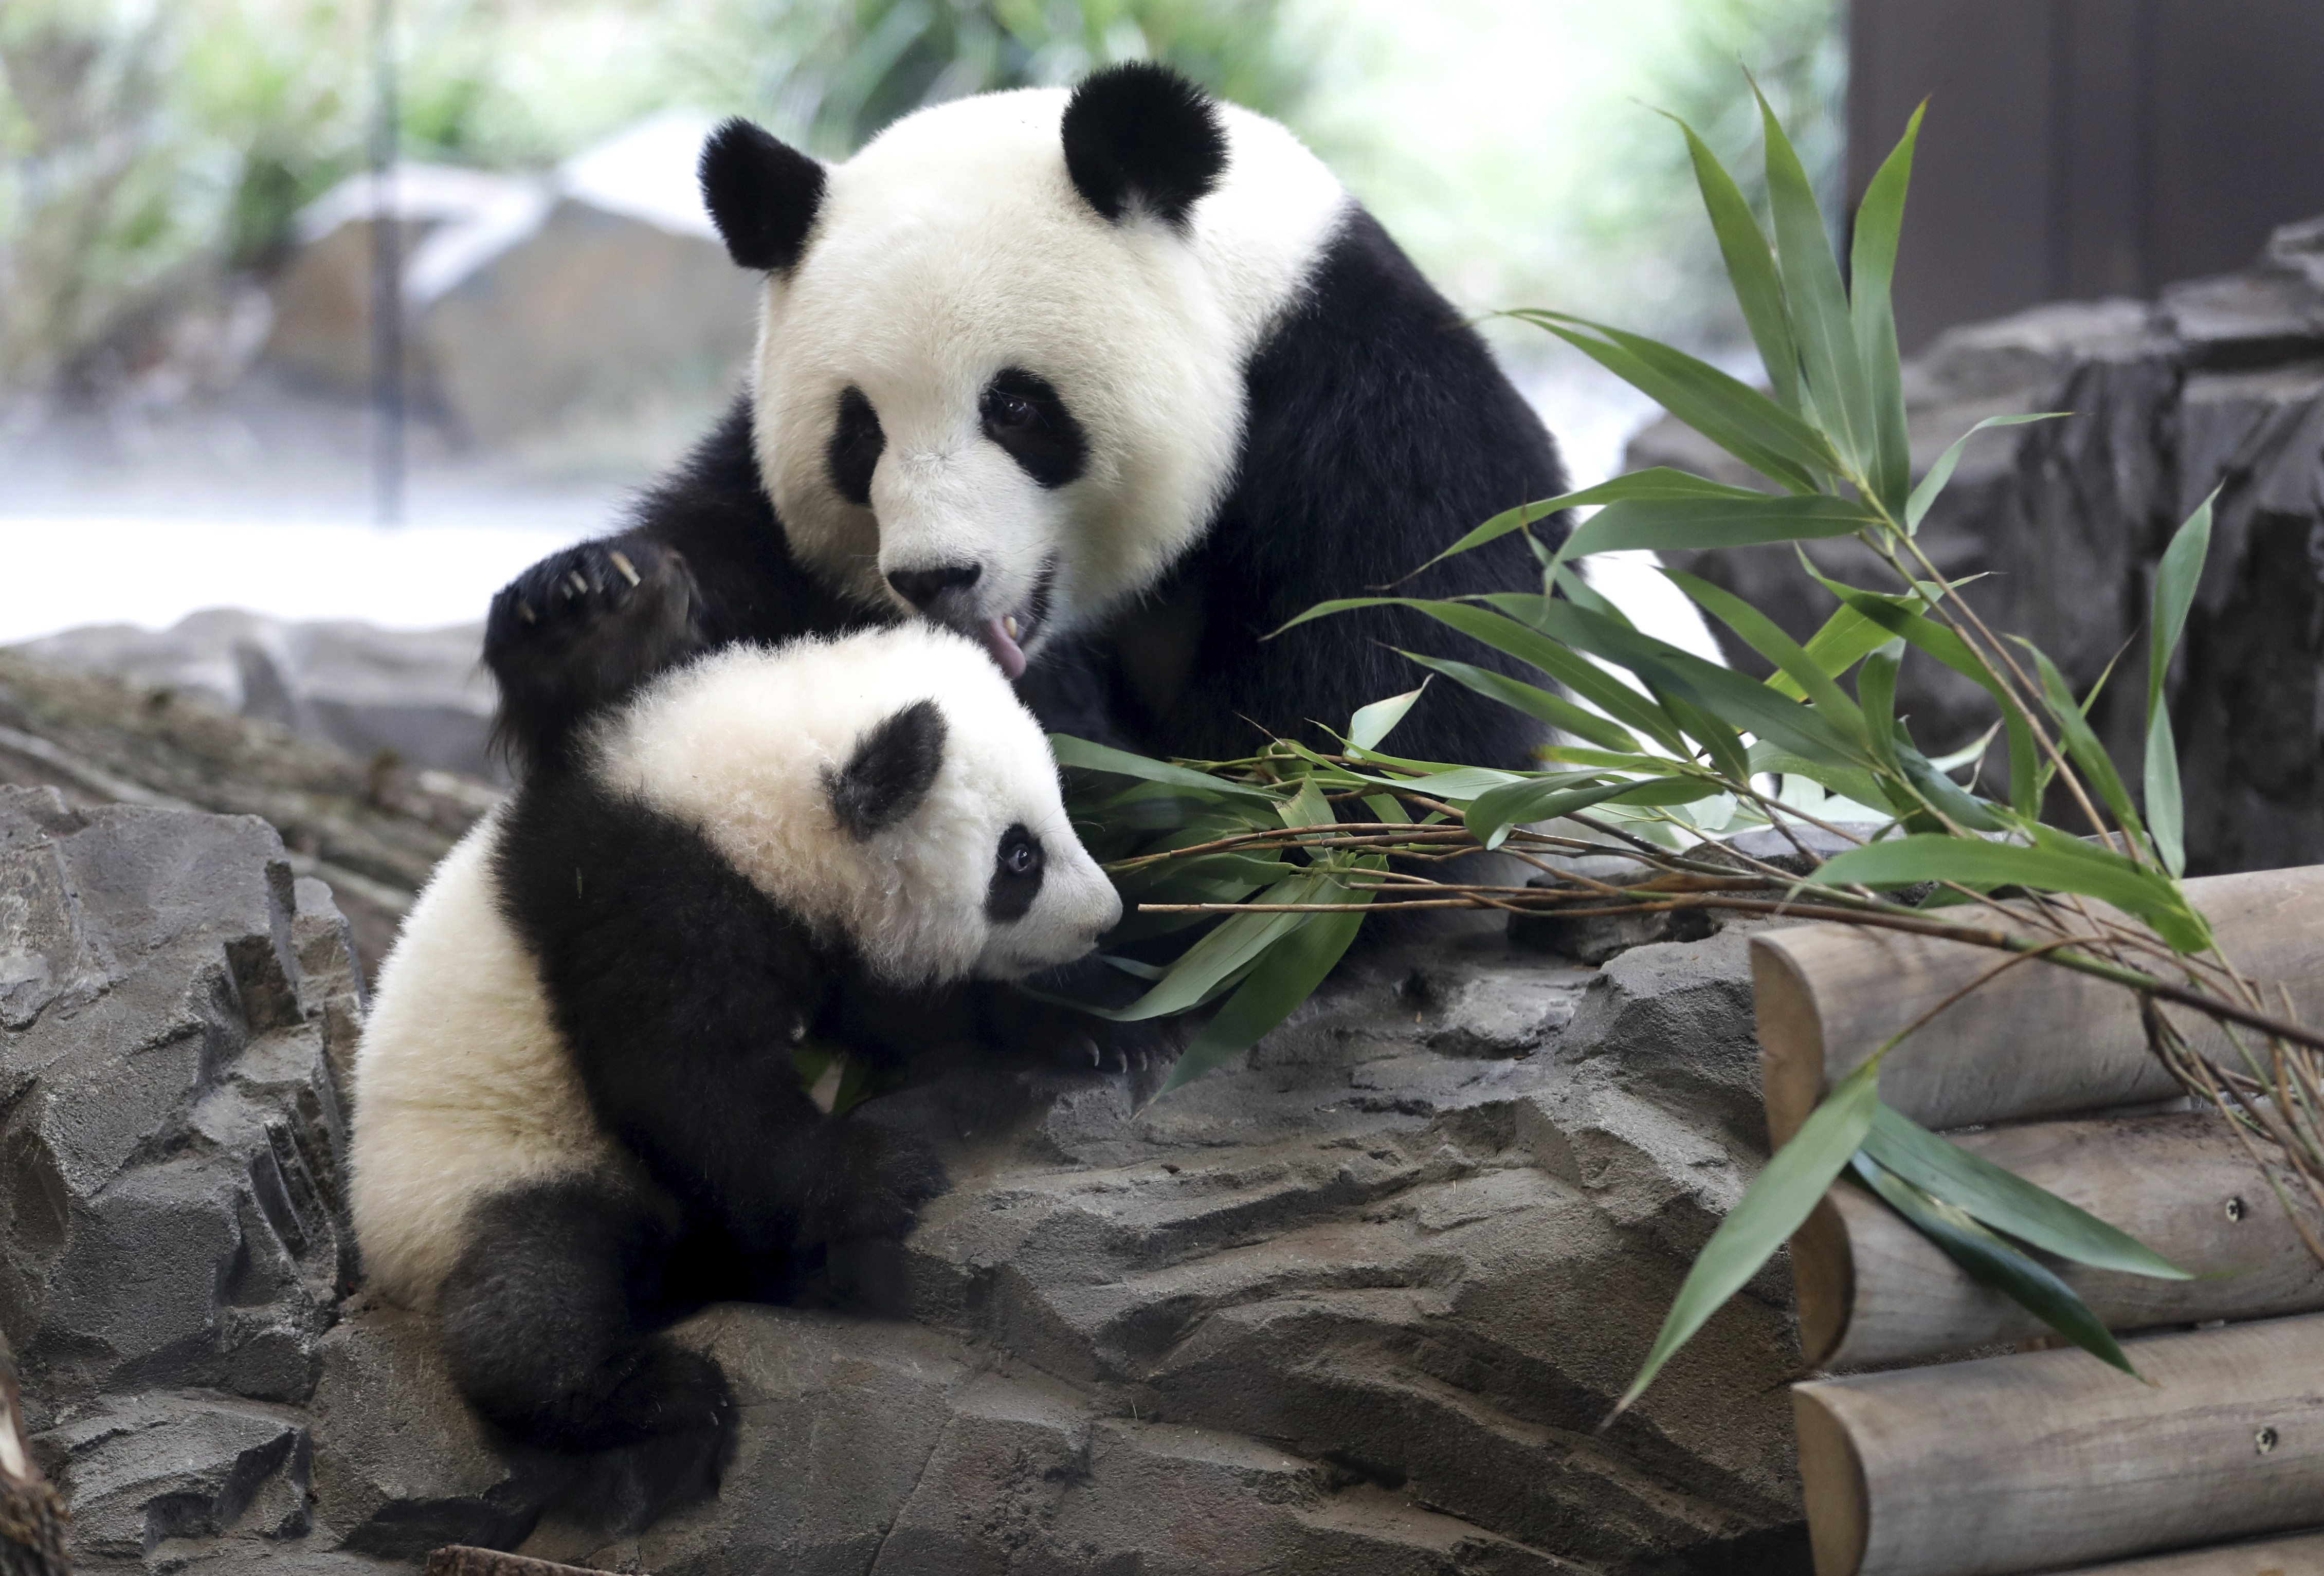 Mother and a young panda